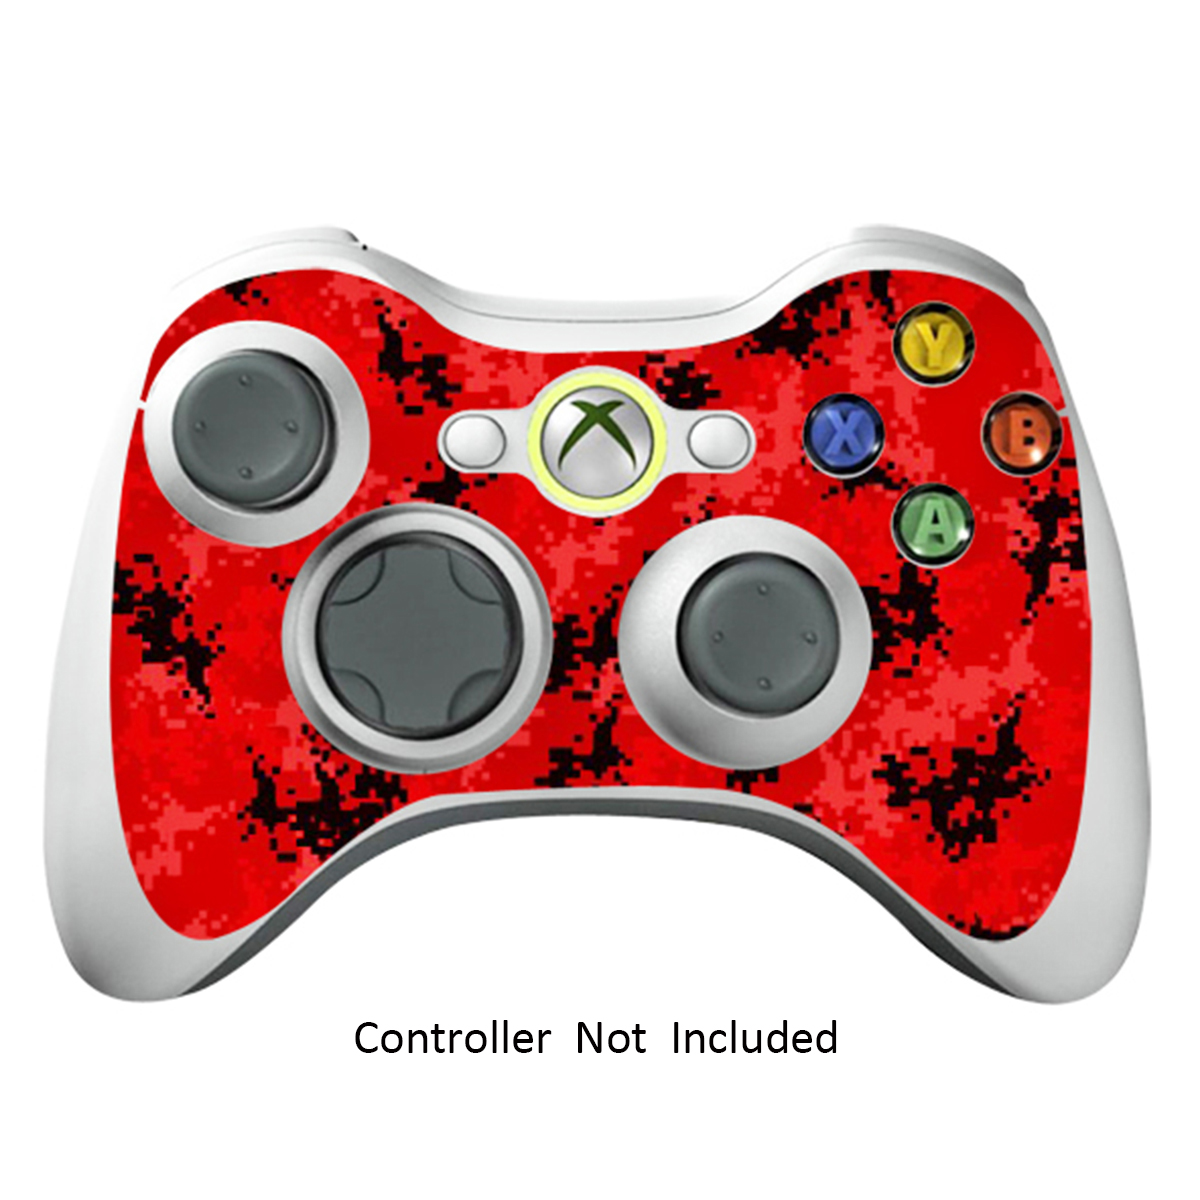 Skin Stickers for Xbox 360 Controller Vinyl X360 Slim Remote Protector Cover Wired Wireless Gamepad Decal - Digicamo Red